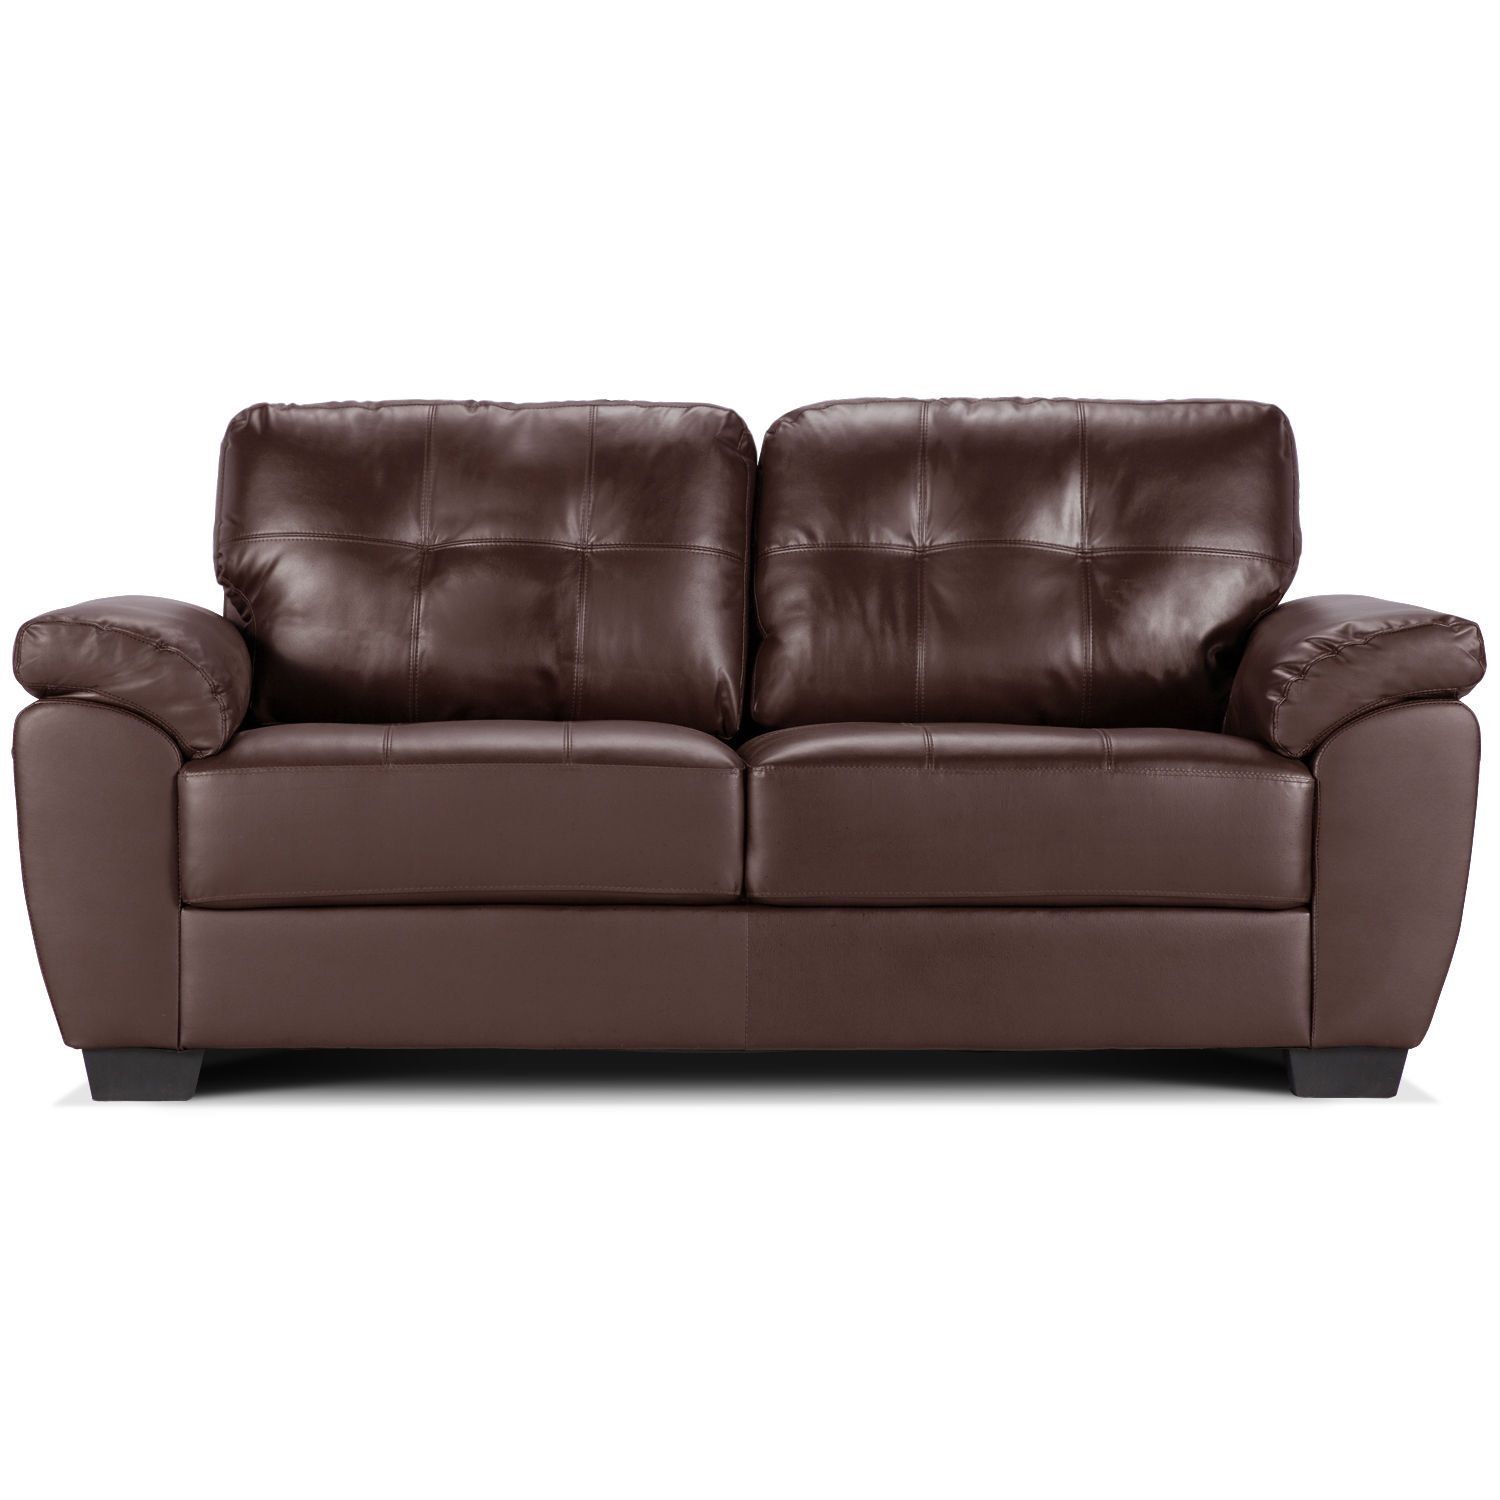 Sofa Brisbane For 309 Brisbane 3 Seater Leather Sofa Next Day Delivery